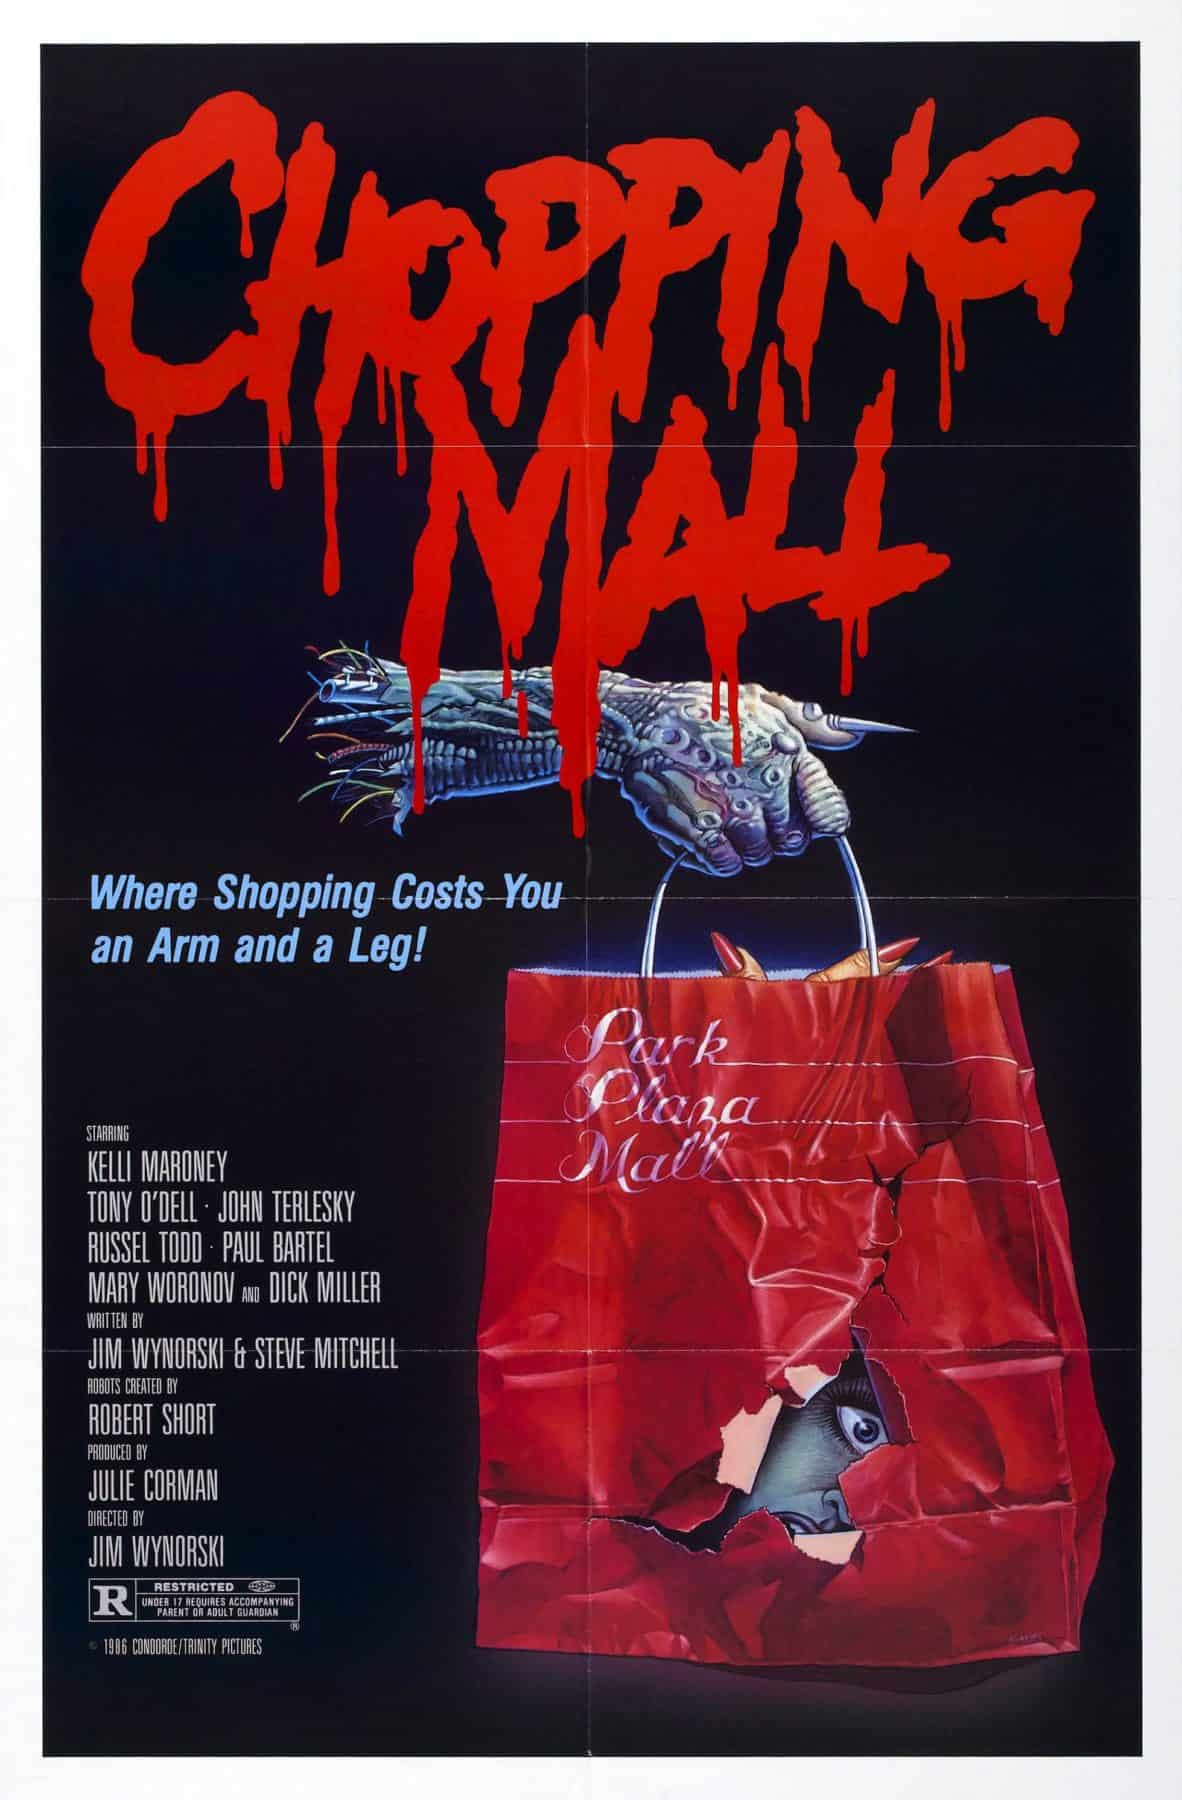 Horror Movie Review: Chopping Mall (1986)